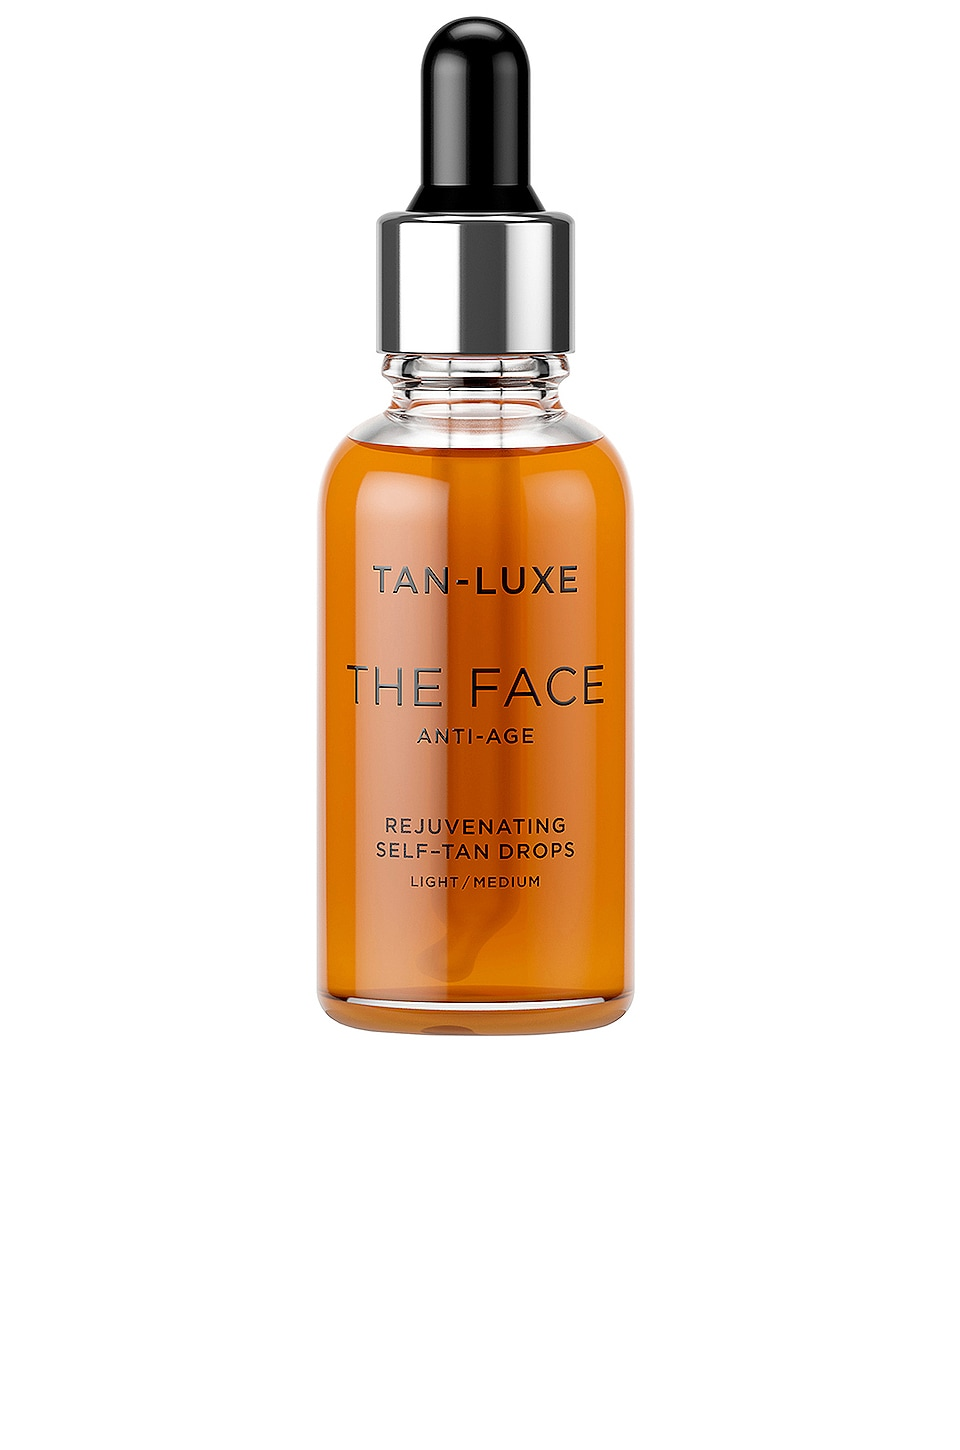 Tan Luxe The Face Anti-Age Rejuvenating Self-Tan Drops in Light / Medium